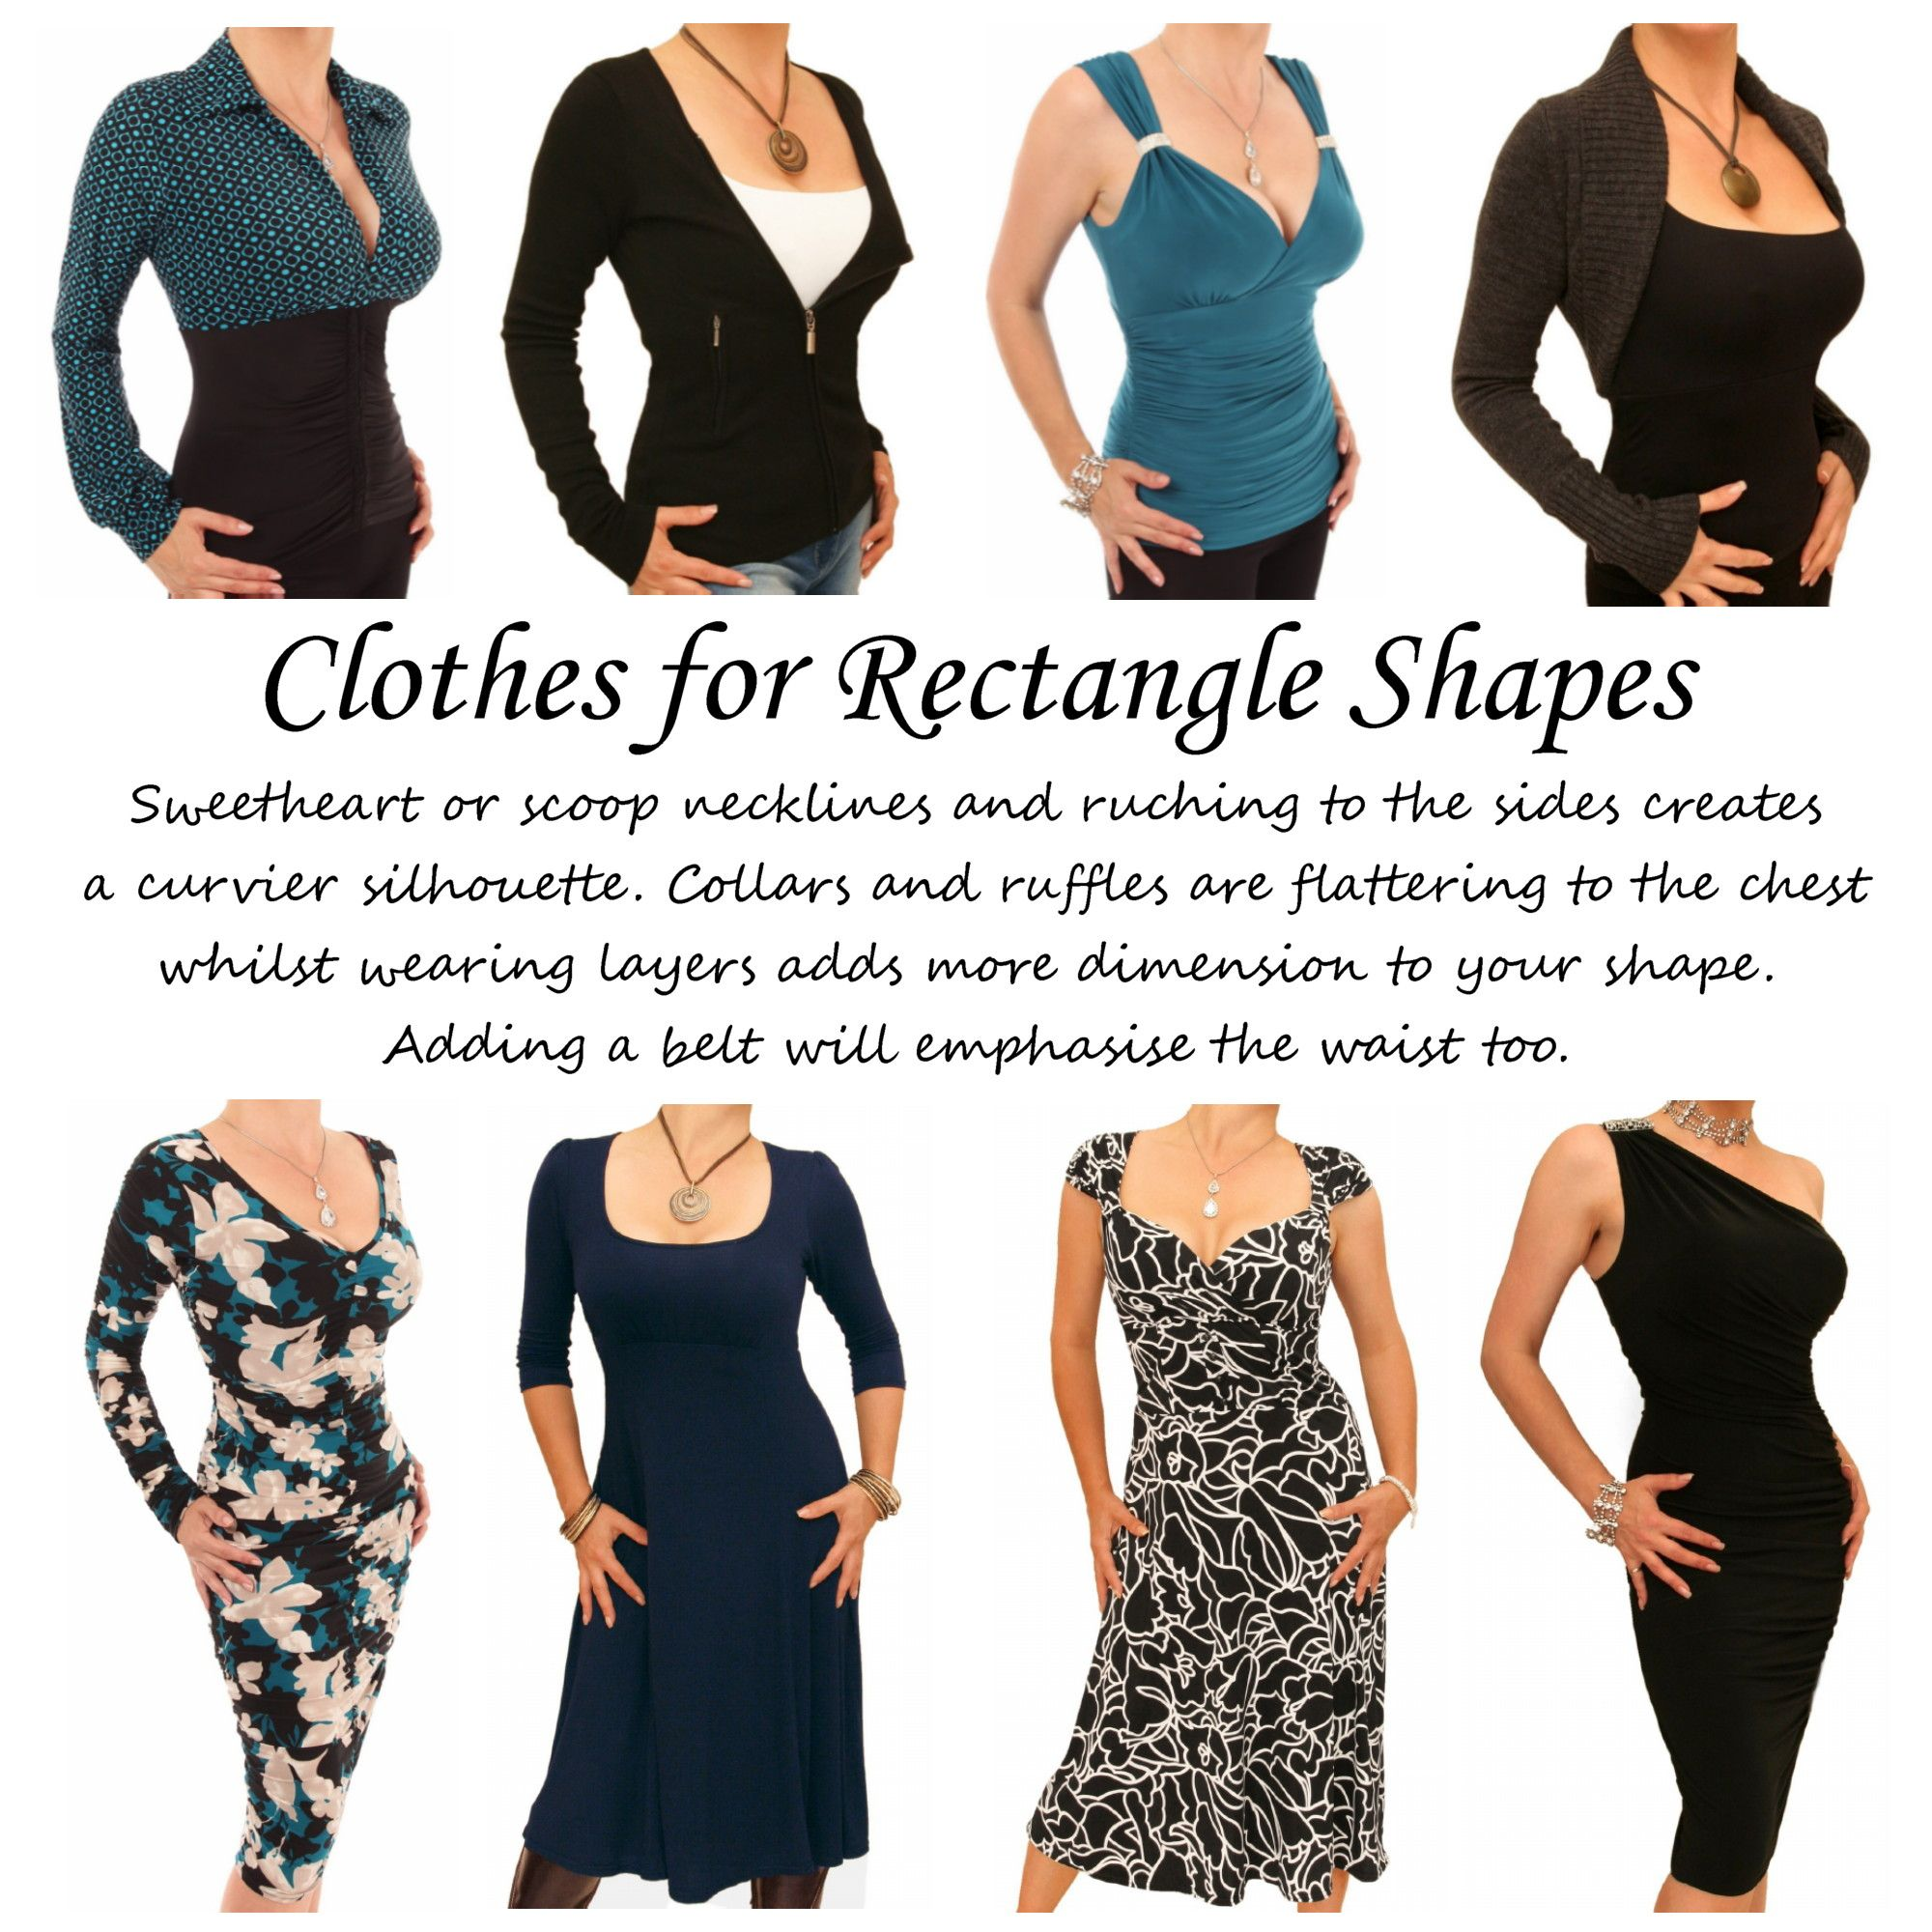 7d997ffd61 Clothes for Rectangle Body Shapes. The definition of a rectangle body shape  is when the